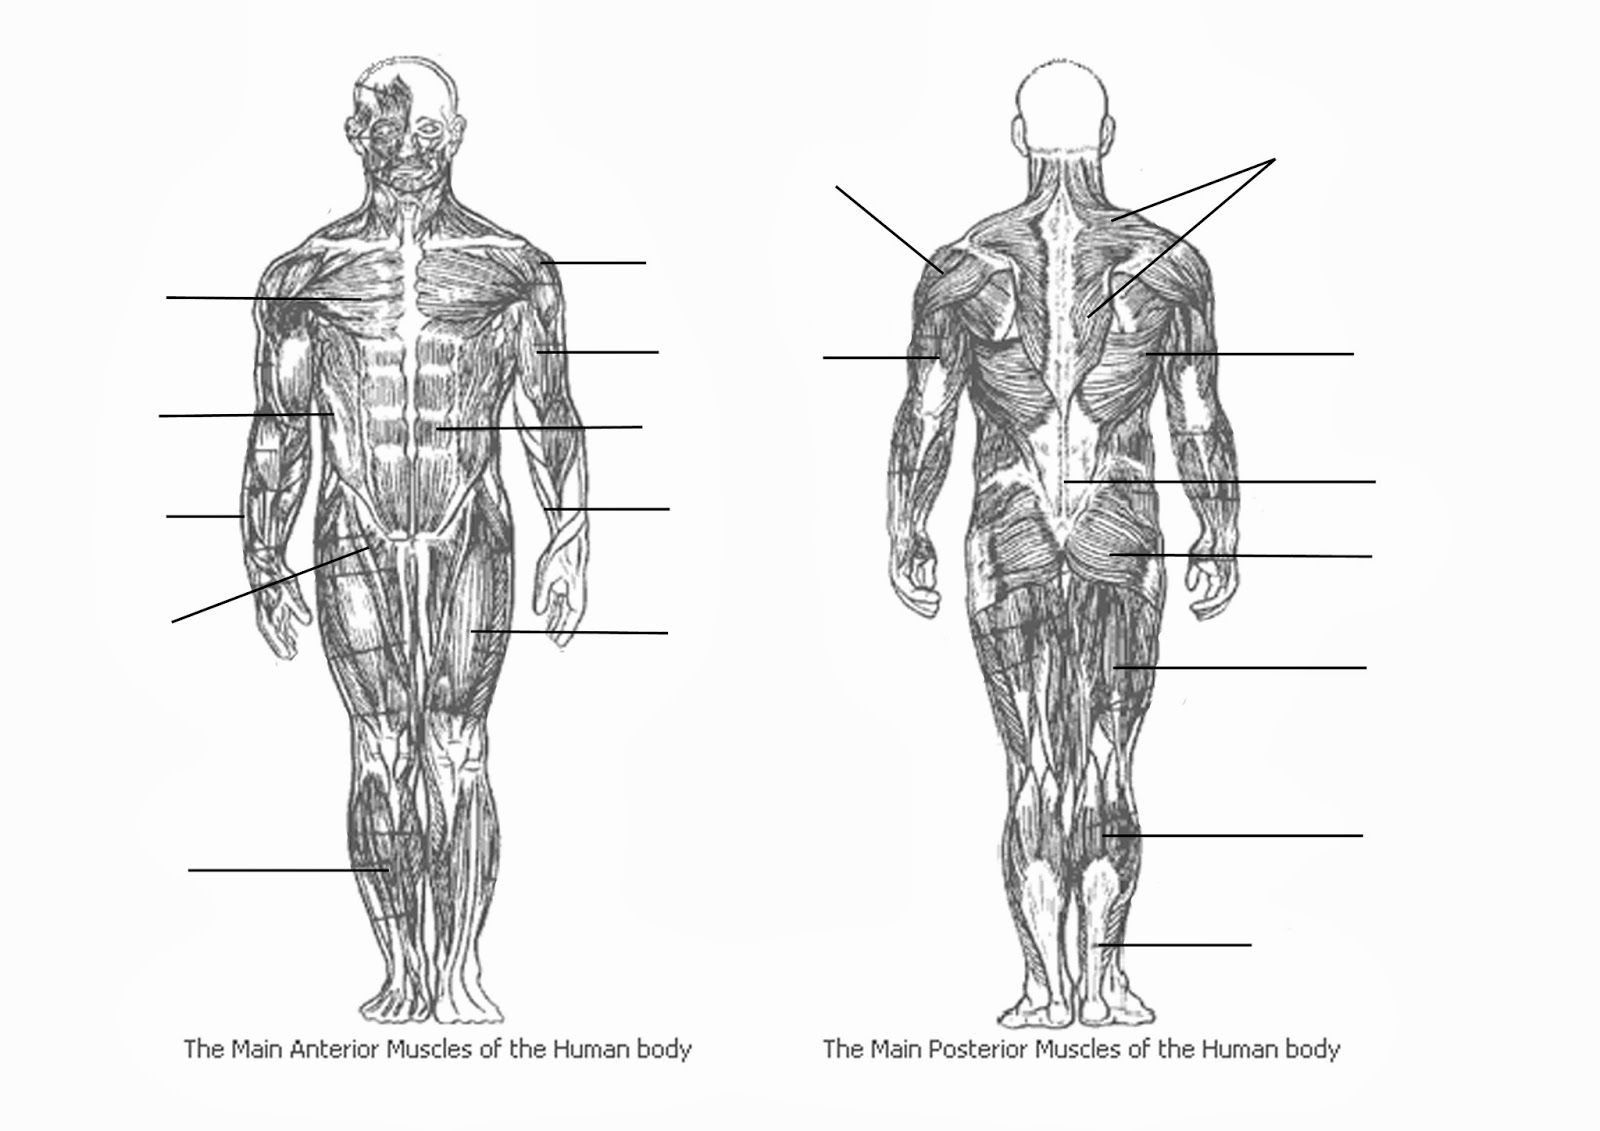 Muscle Diagram Blank Muscle Diagram Blank Inspirational Body Diagram Blank Body Of Human For